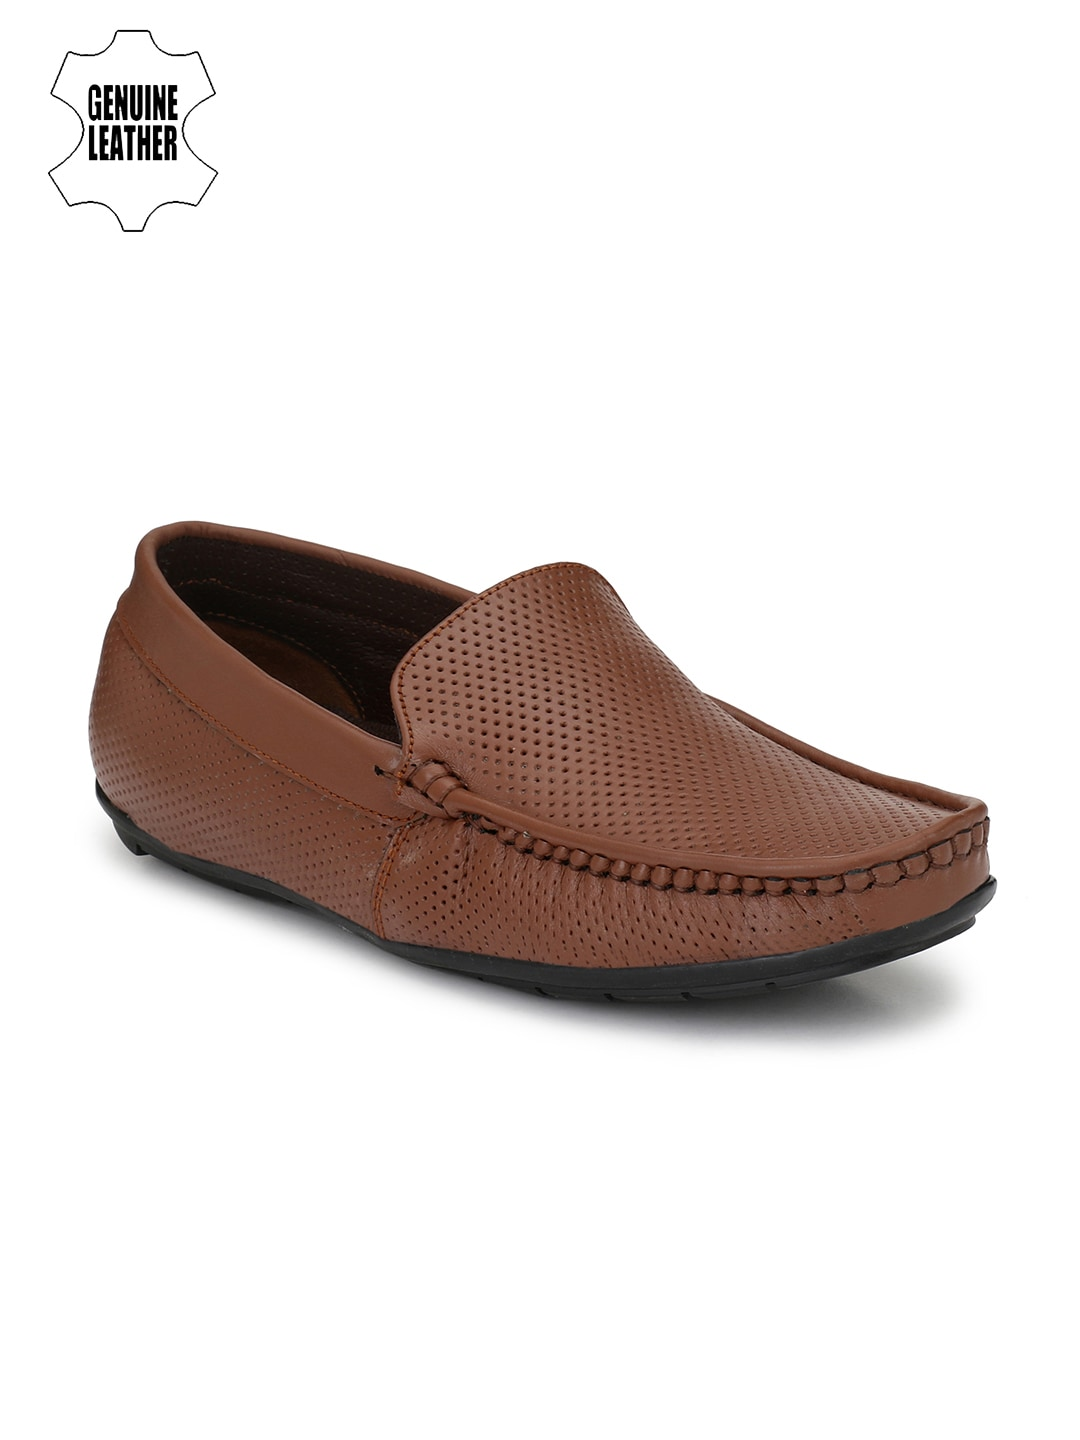 76bfbb6a33a7 Brown Casual Shoes - Buy Brown Casual Shoes For Men & Women Online